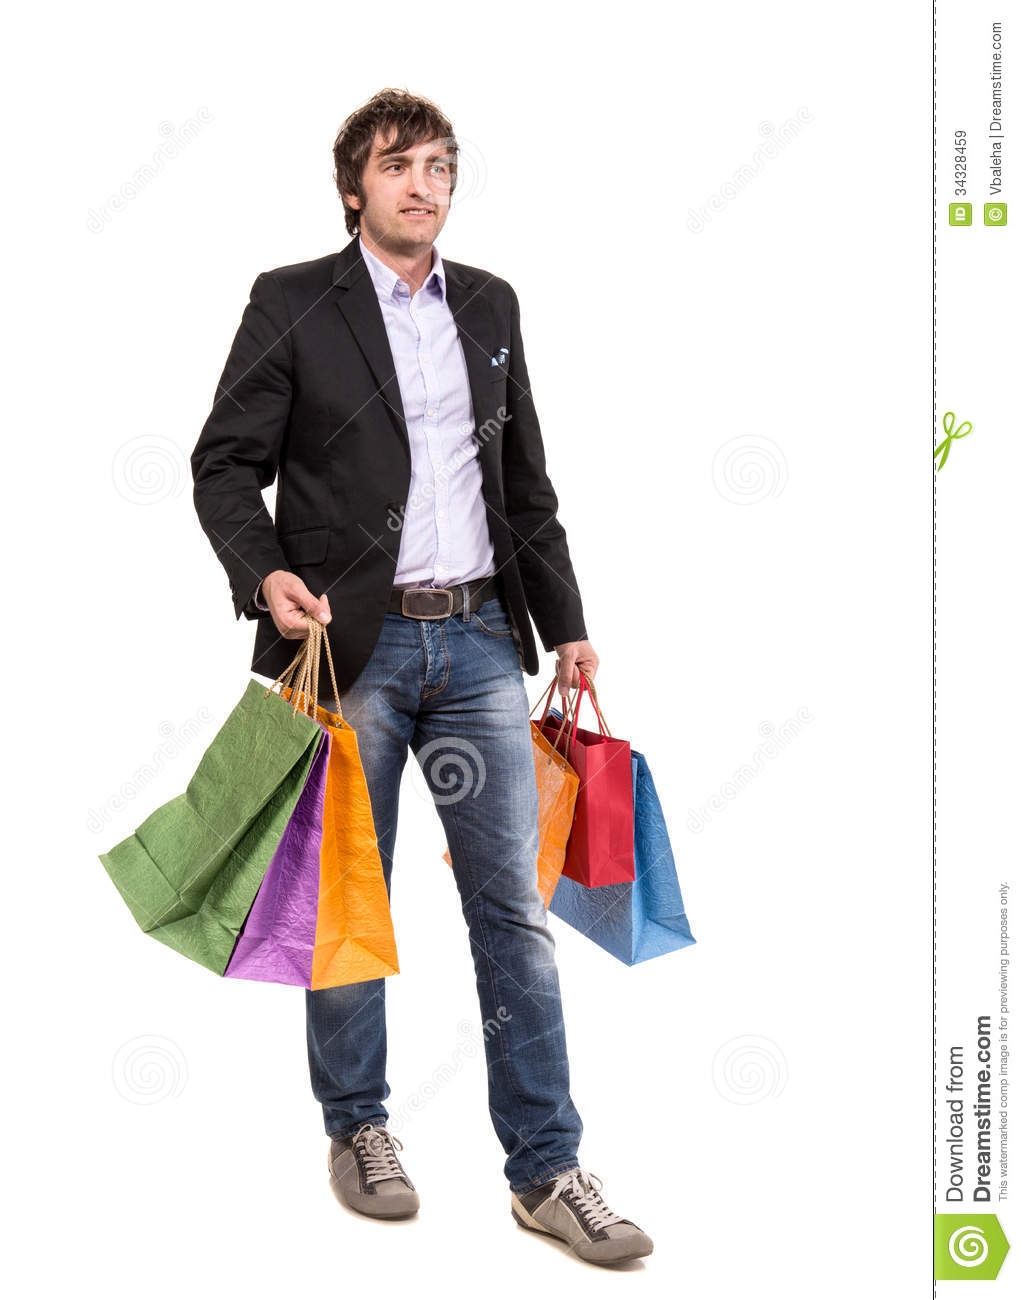 Handsome Man With Shopping Bags Royalty Free Stock Images - Image ...